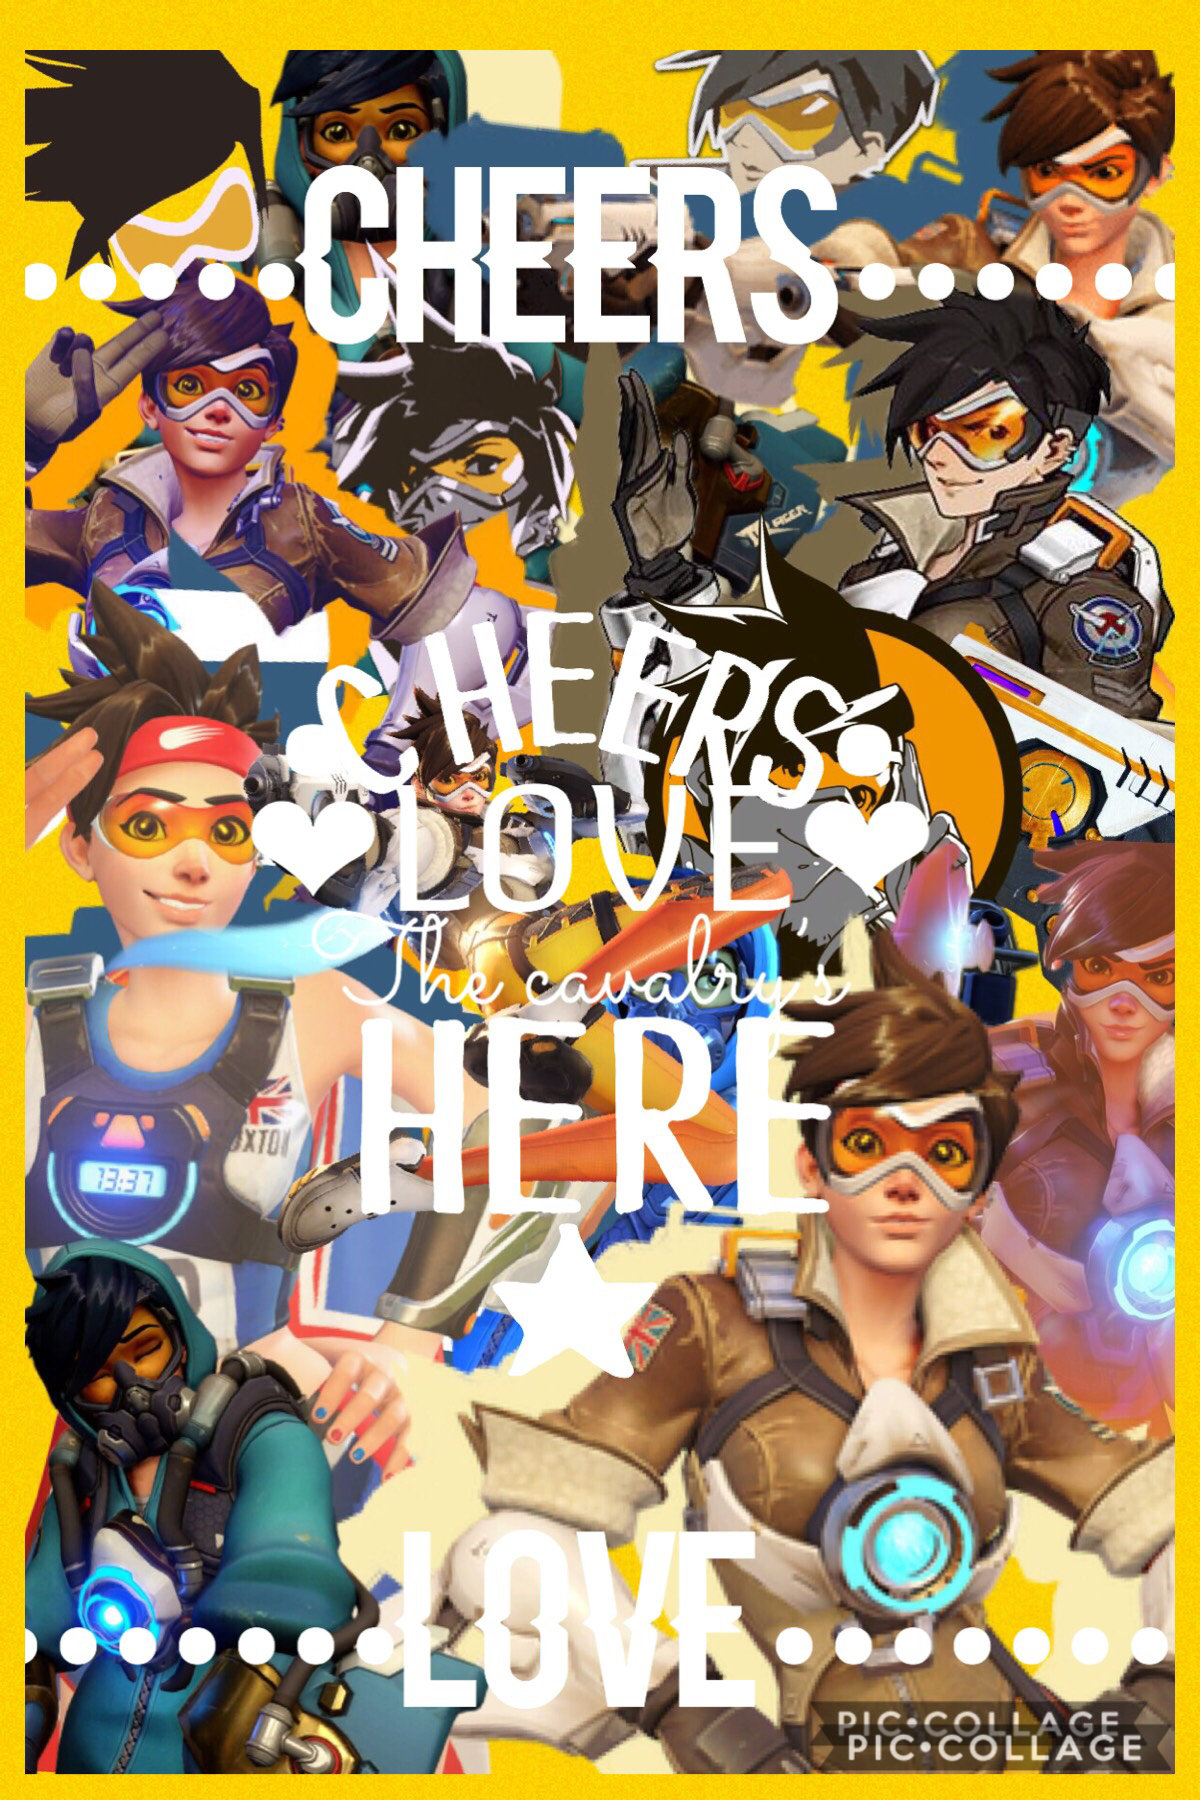 👾Tracer👾 (TAP)  I've hit a new low in this series....  #3 of my overwatch collage series~ What do you all think?